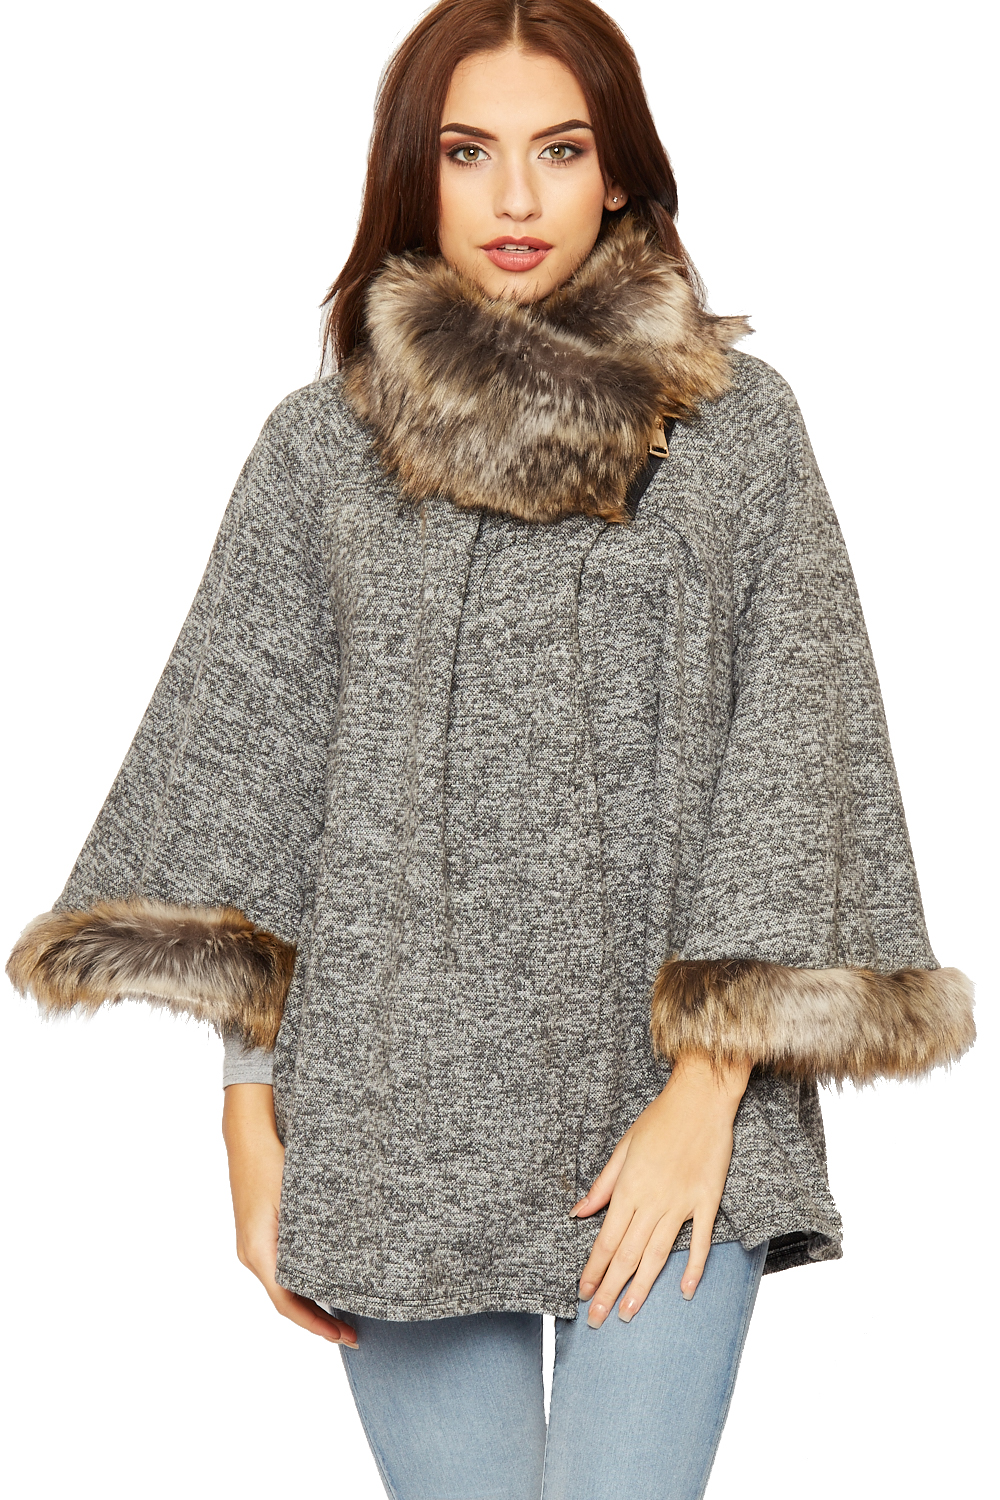 Poncho Jacket Knitting Pattern : Womens Faux Fur Hooded Cape Ladies Knitted Poncho Cloak Jacket Cardigan 14-26...